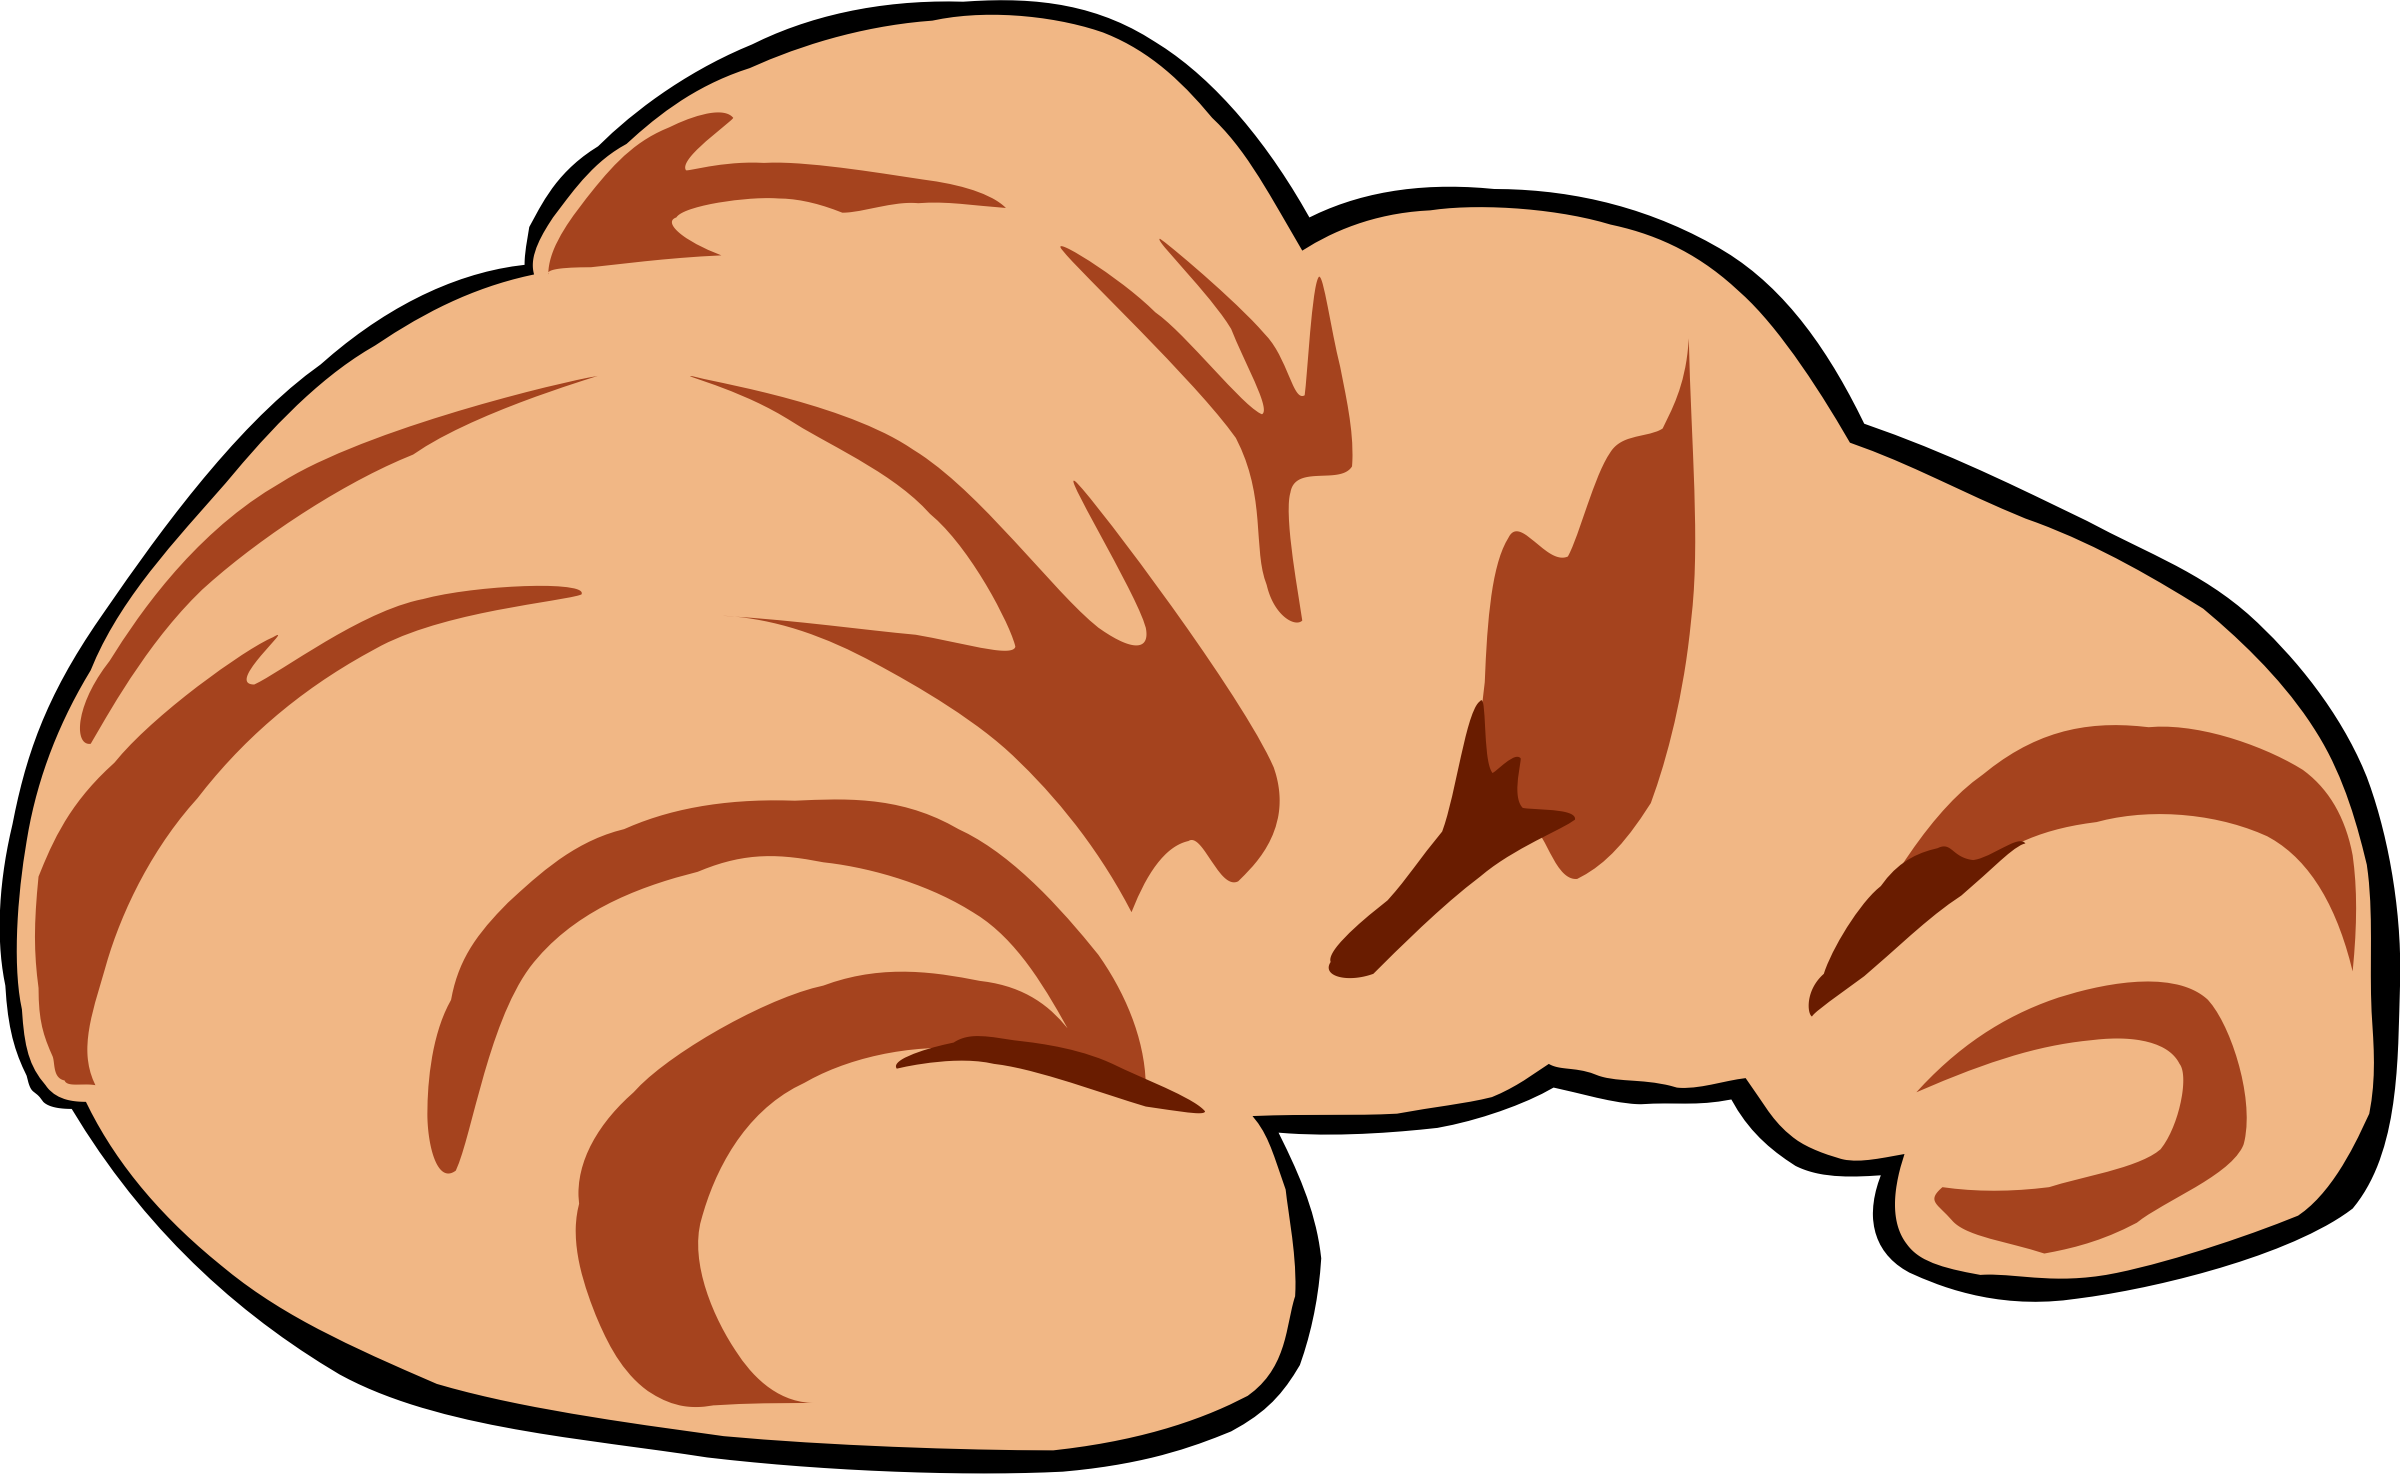 Pastry clipart animated Croissant Food Food Fast Clipart